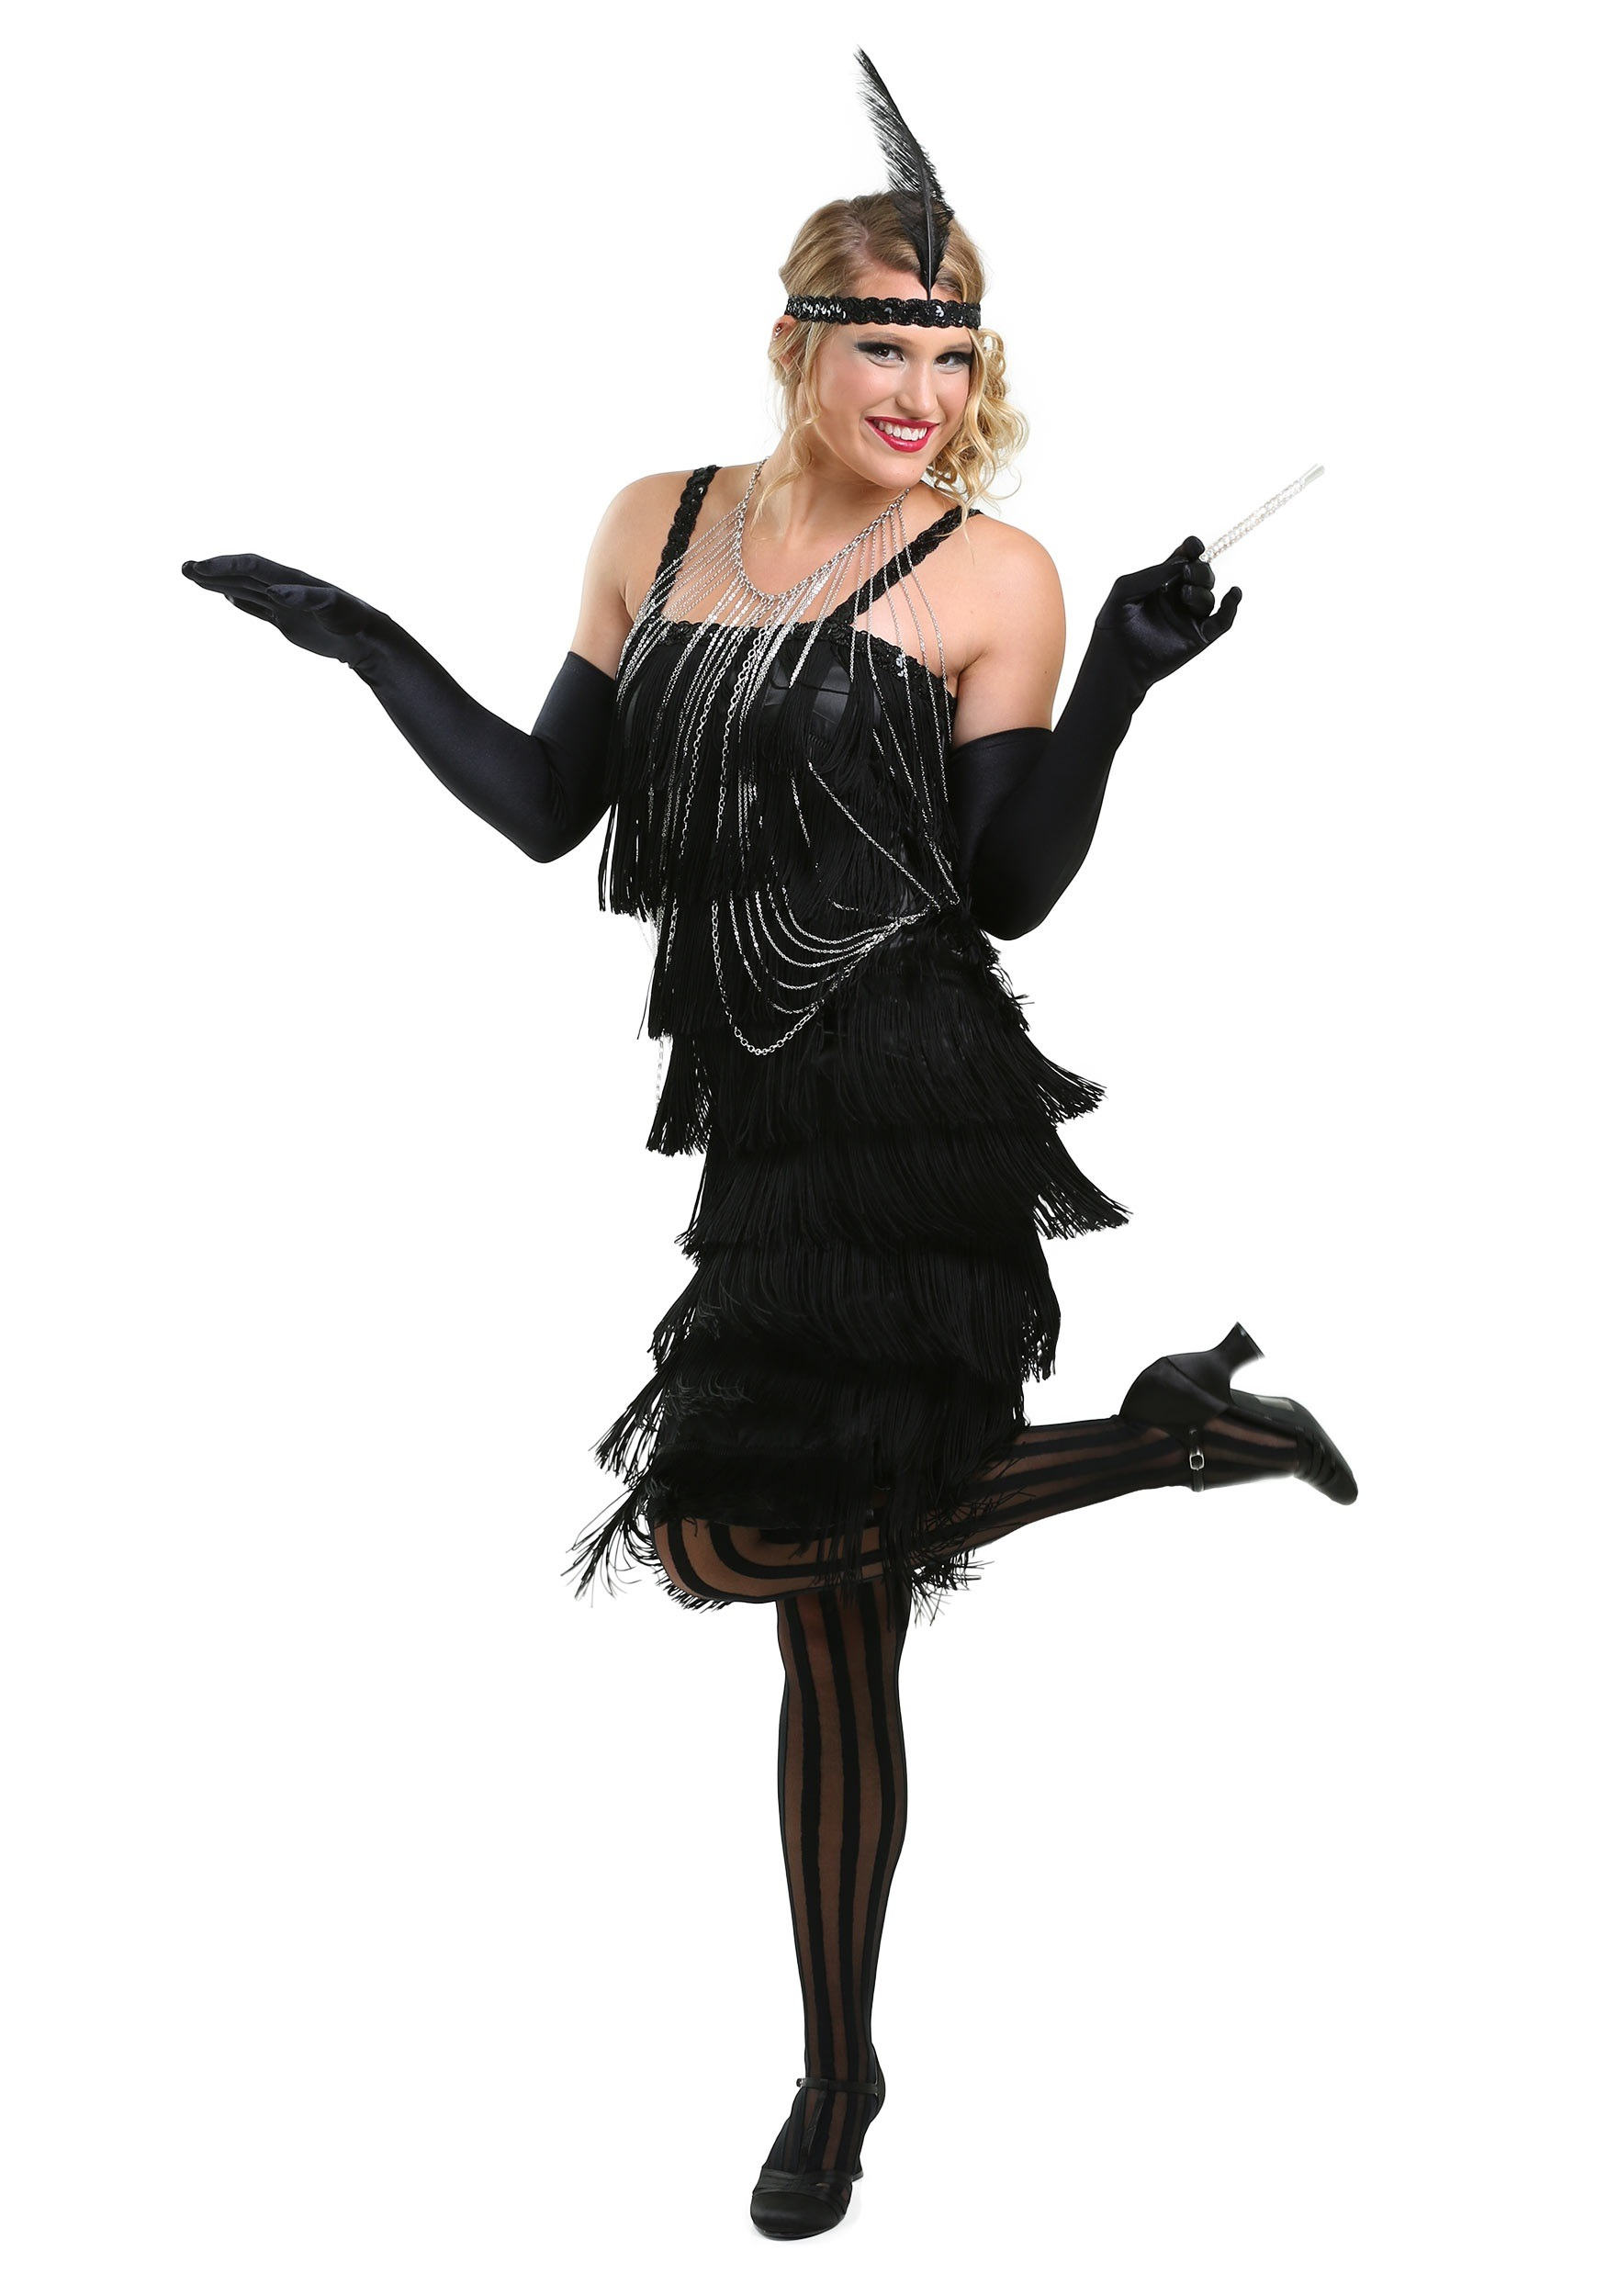 halloween costume ideas flapper costumes adult flapper costumes black halloween costumes ideas black corset